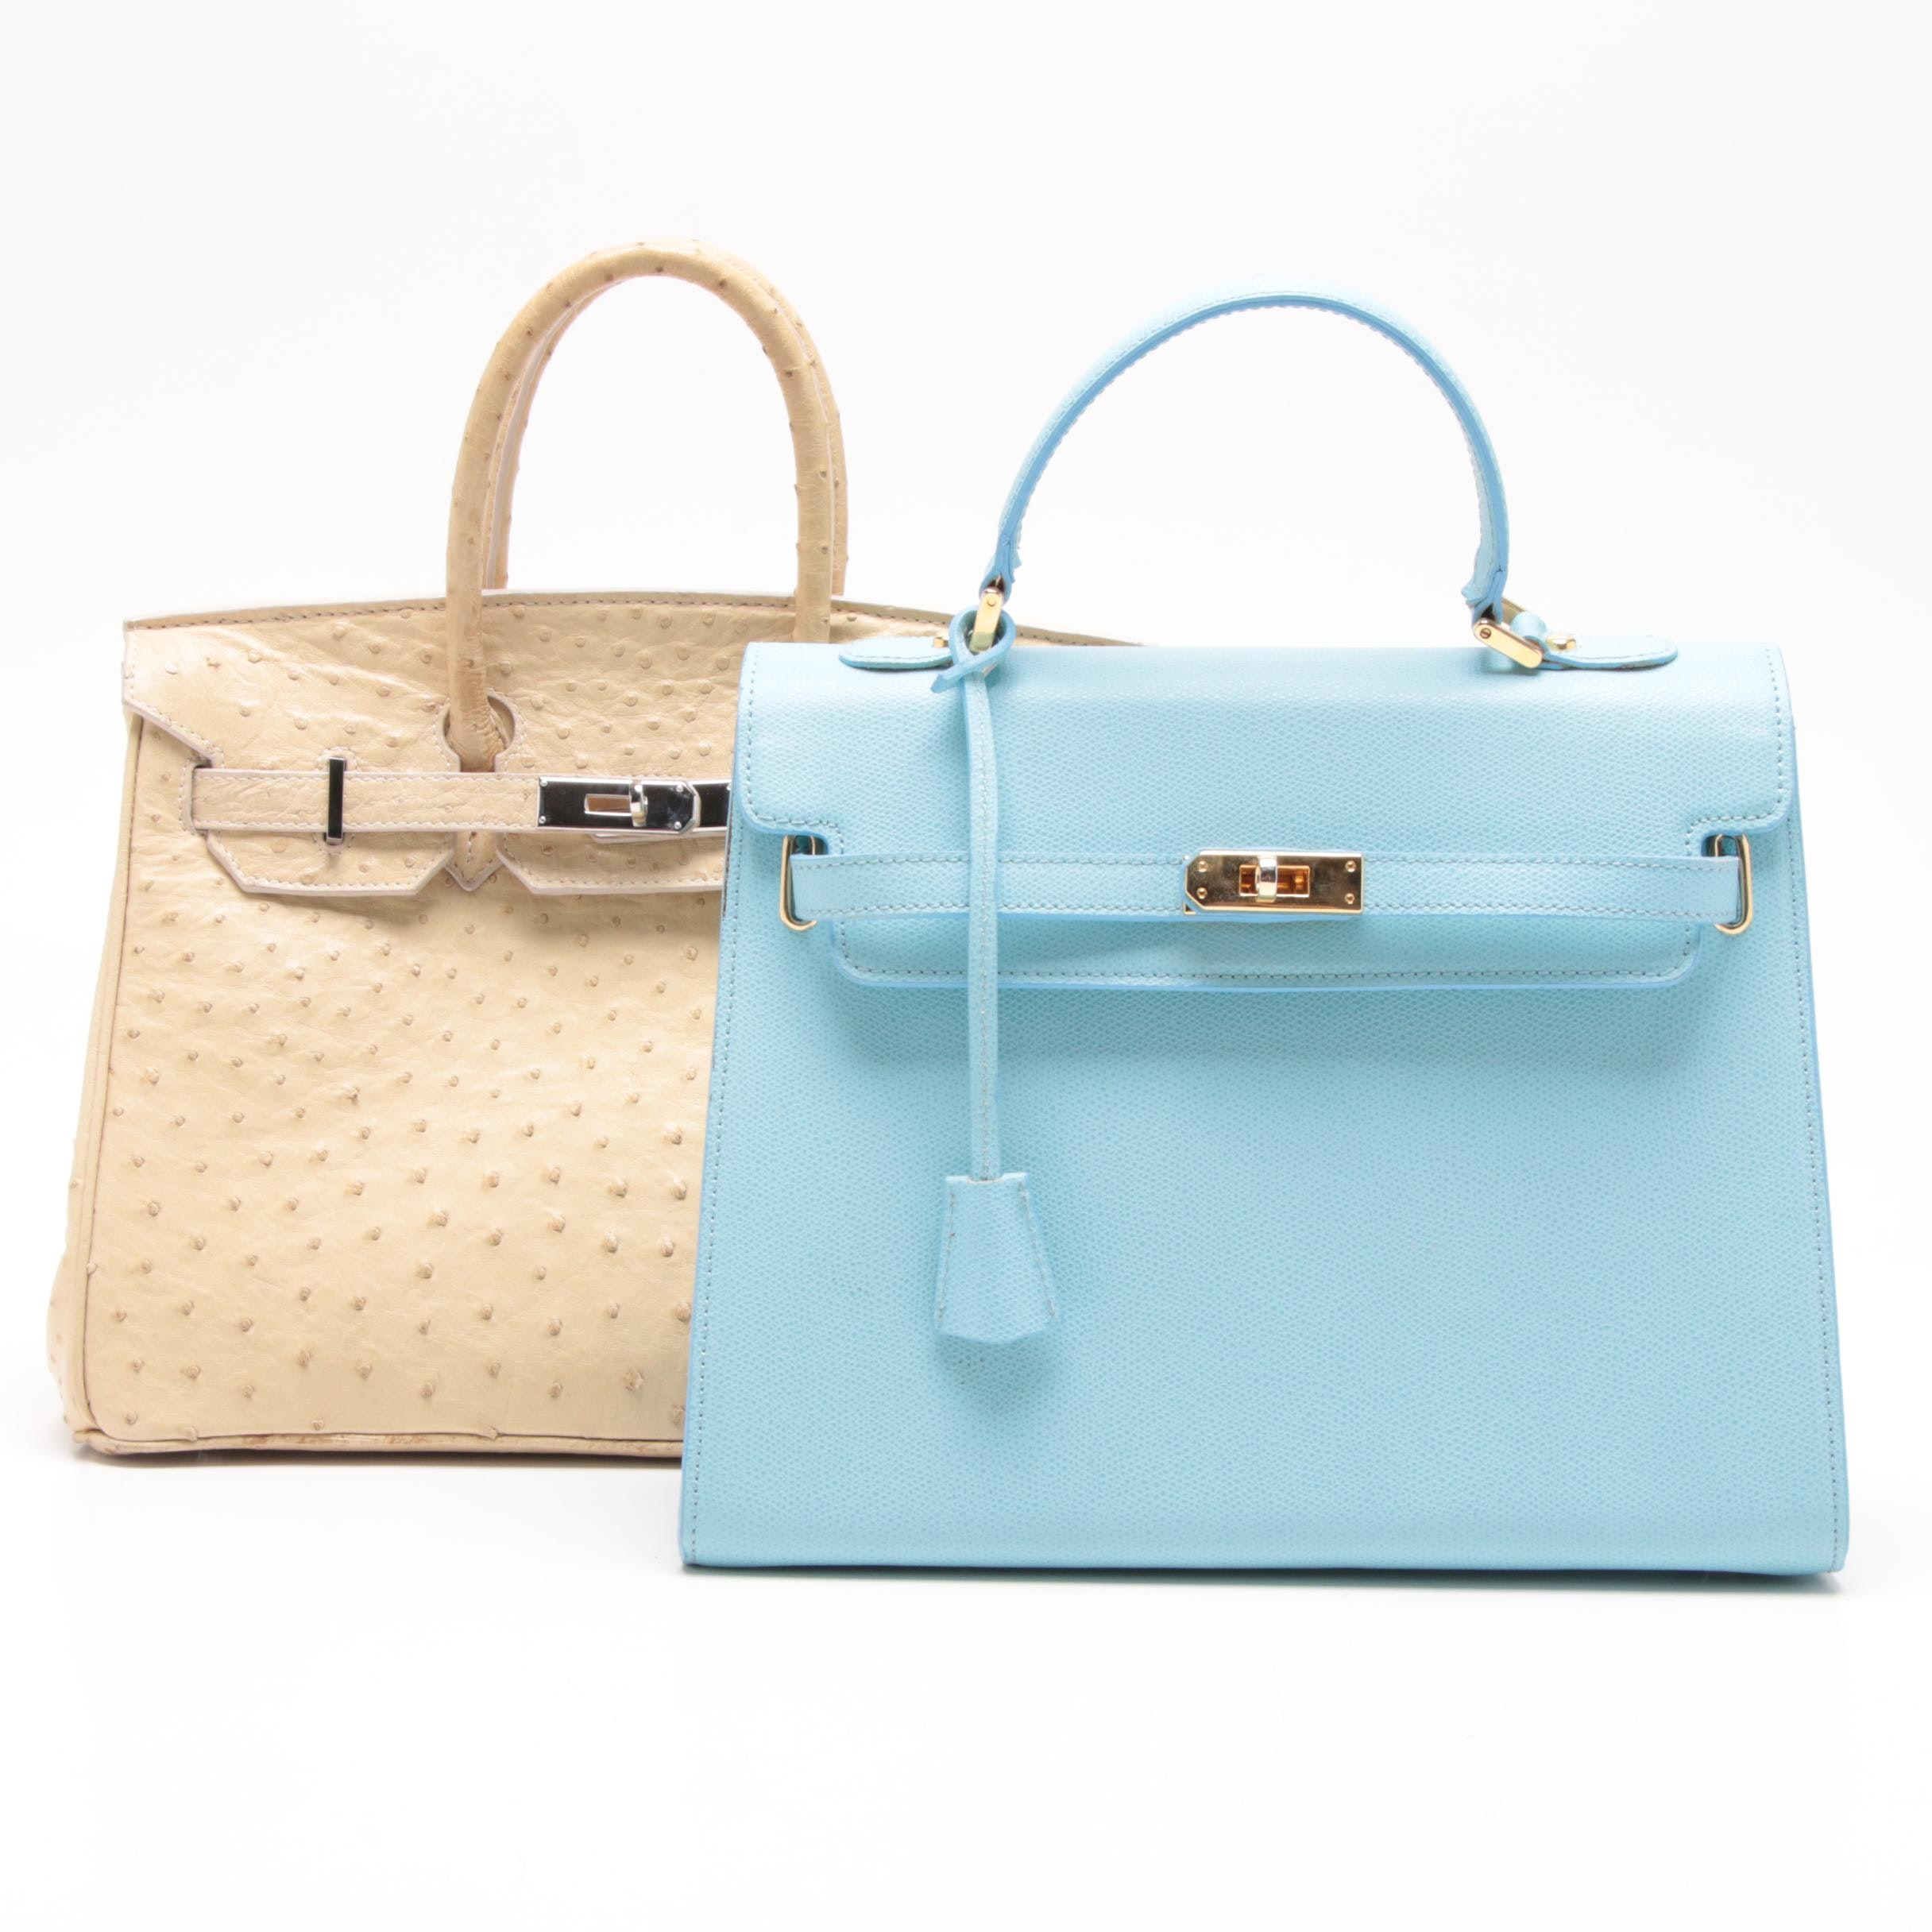 Via Borgospesso Light Blue Leather Satchel and Beige Ostrich Leather Satchel